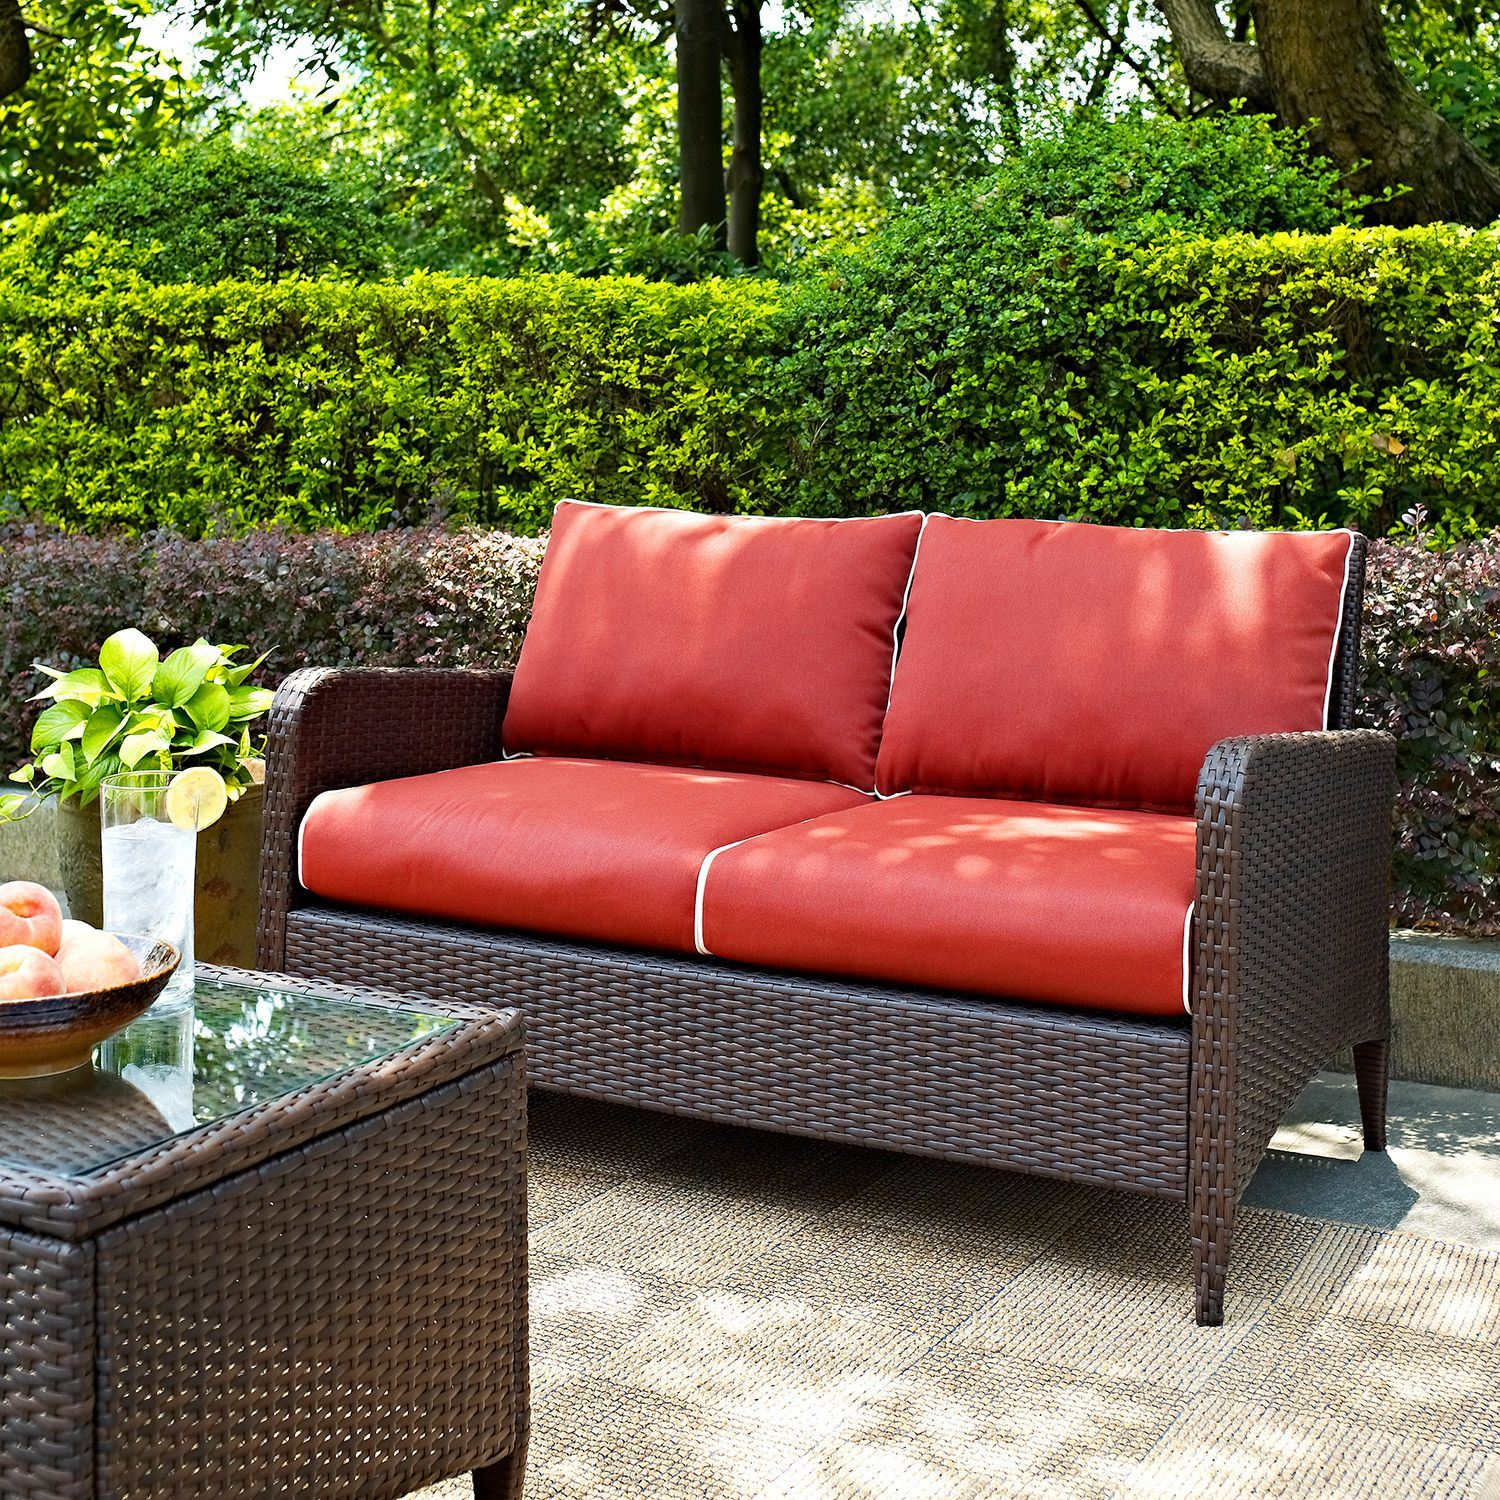 Patio Furniture Loveseat Cushions: Kiawah Outdoor Wicker Loveseat, Brown *D